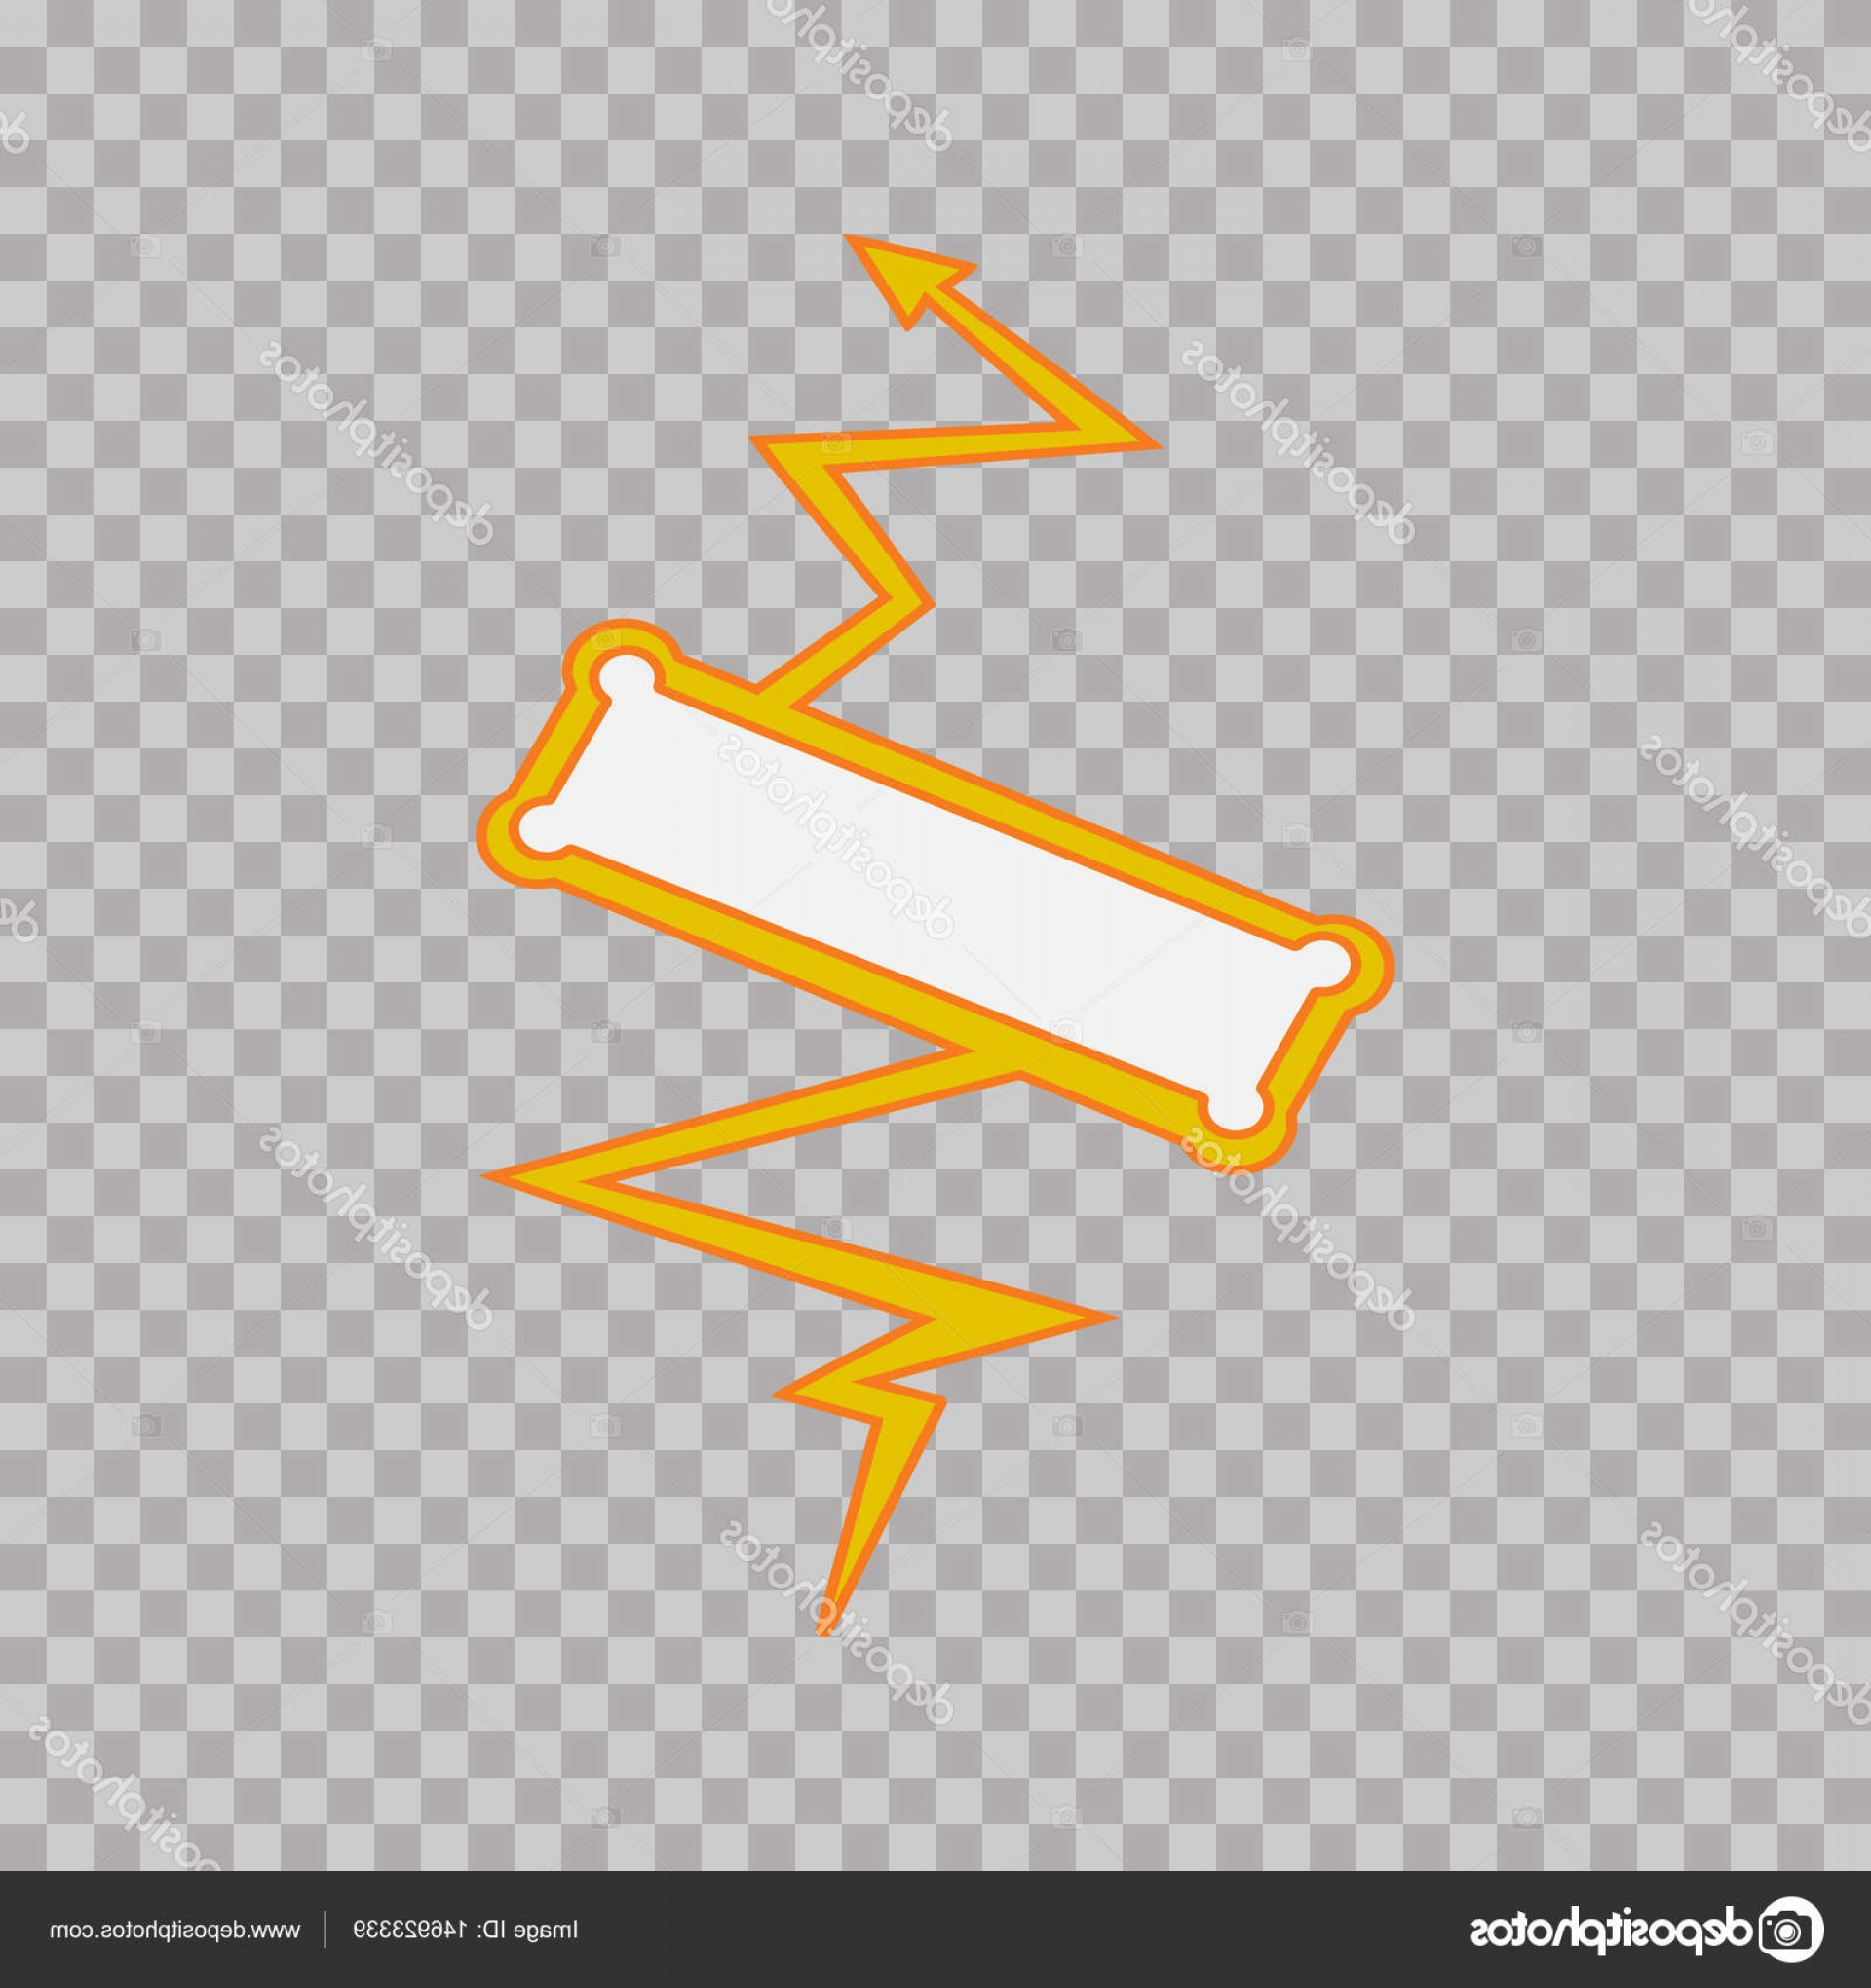 Flash Superhero Logo Vector: Stock Illustration Thunderbolt Sign On Tranparent Background